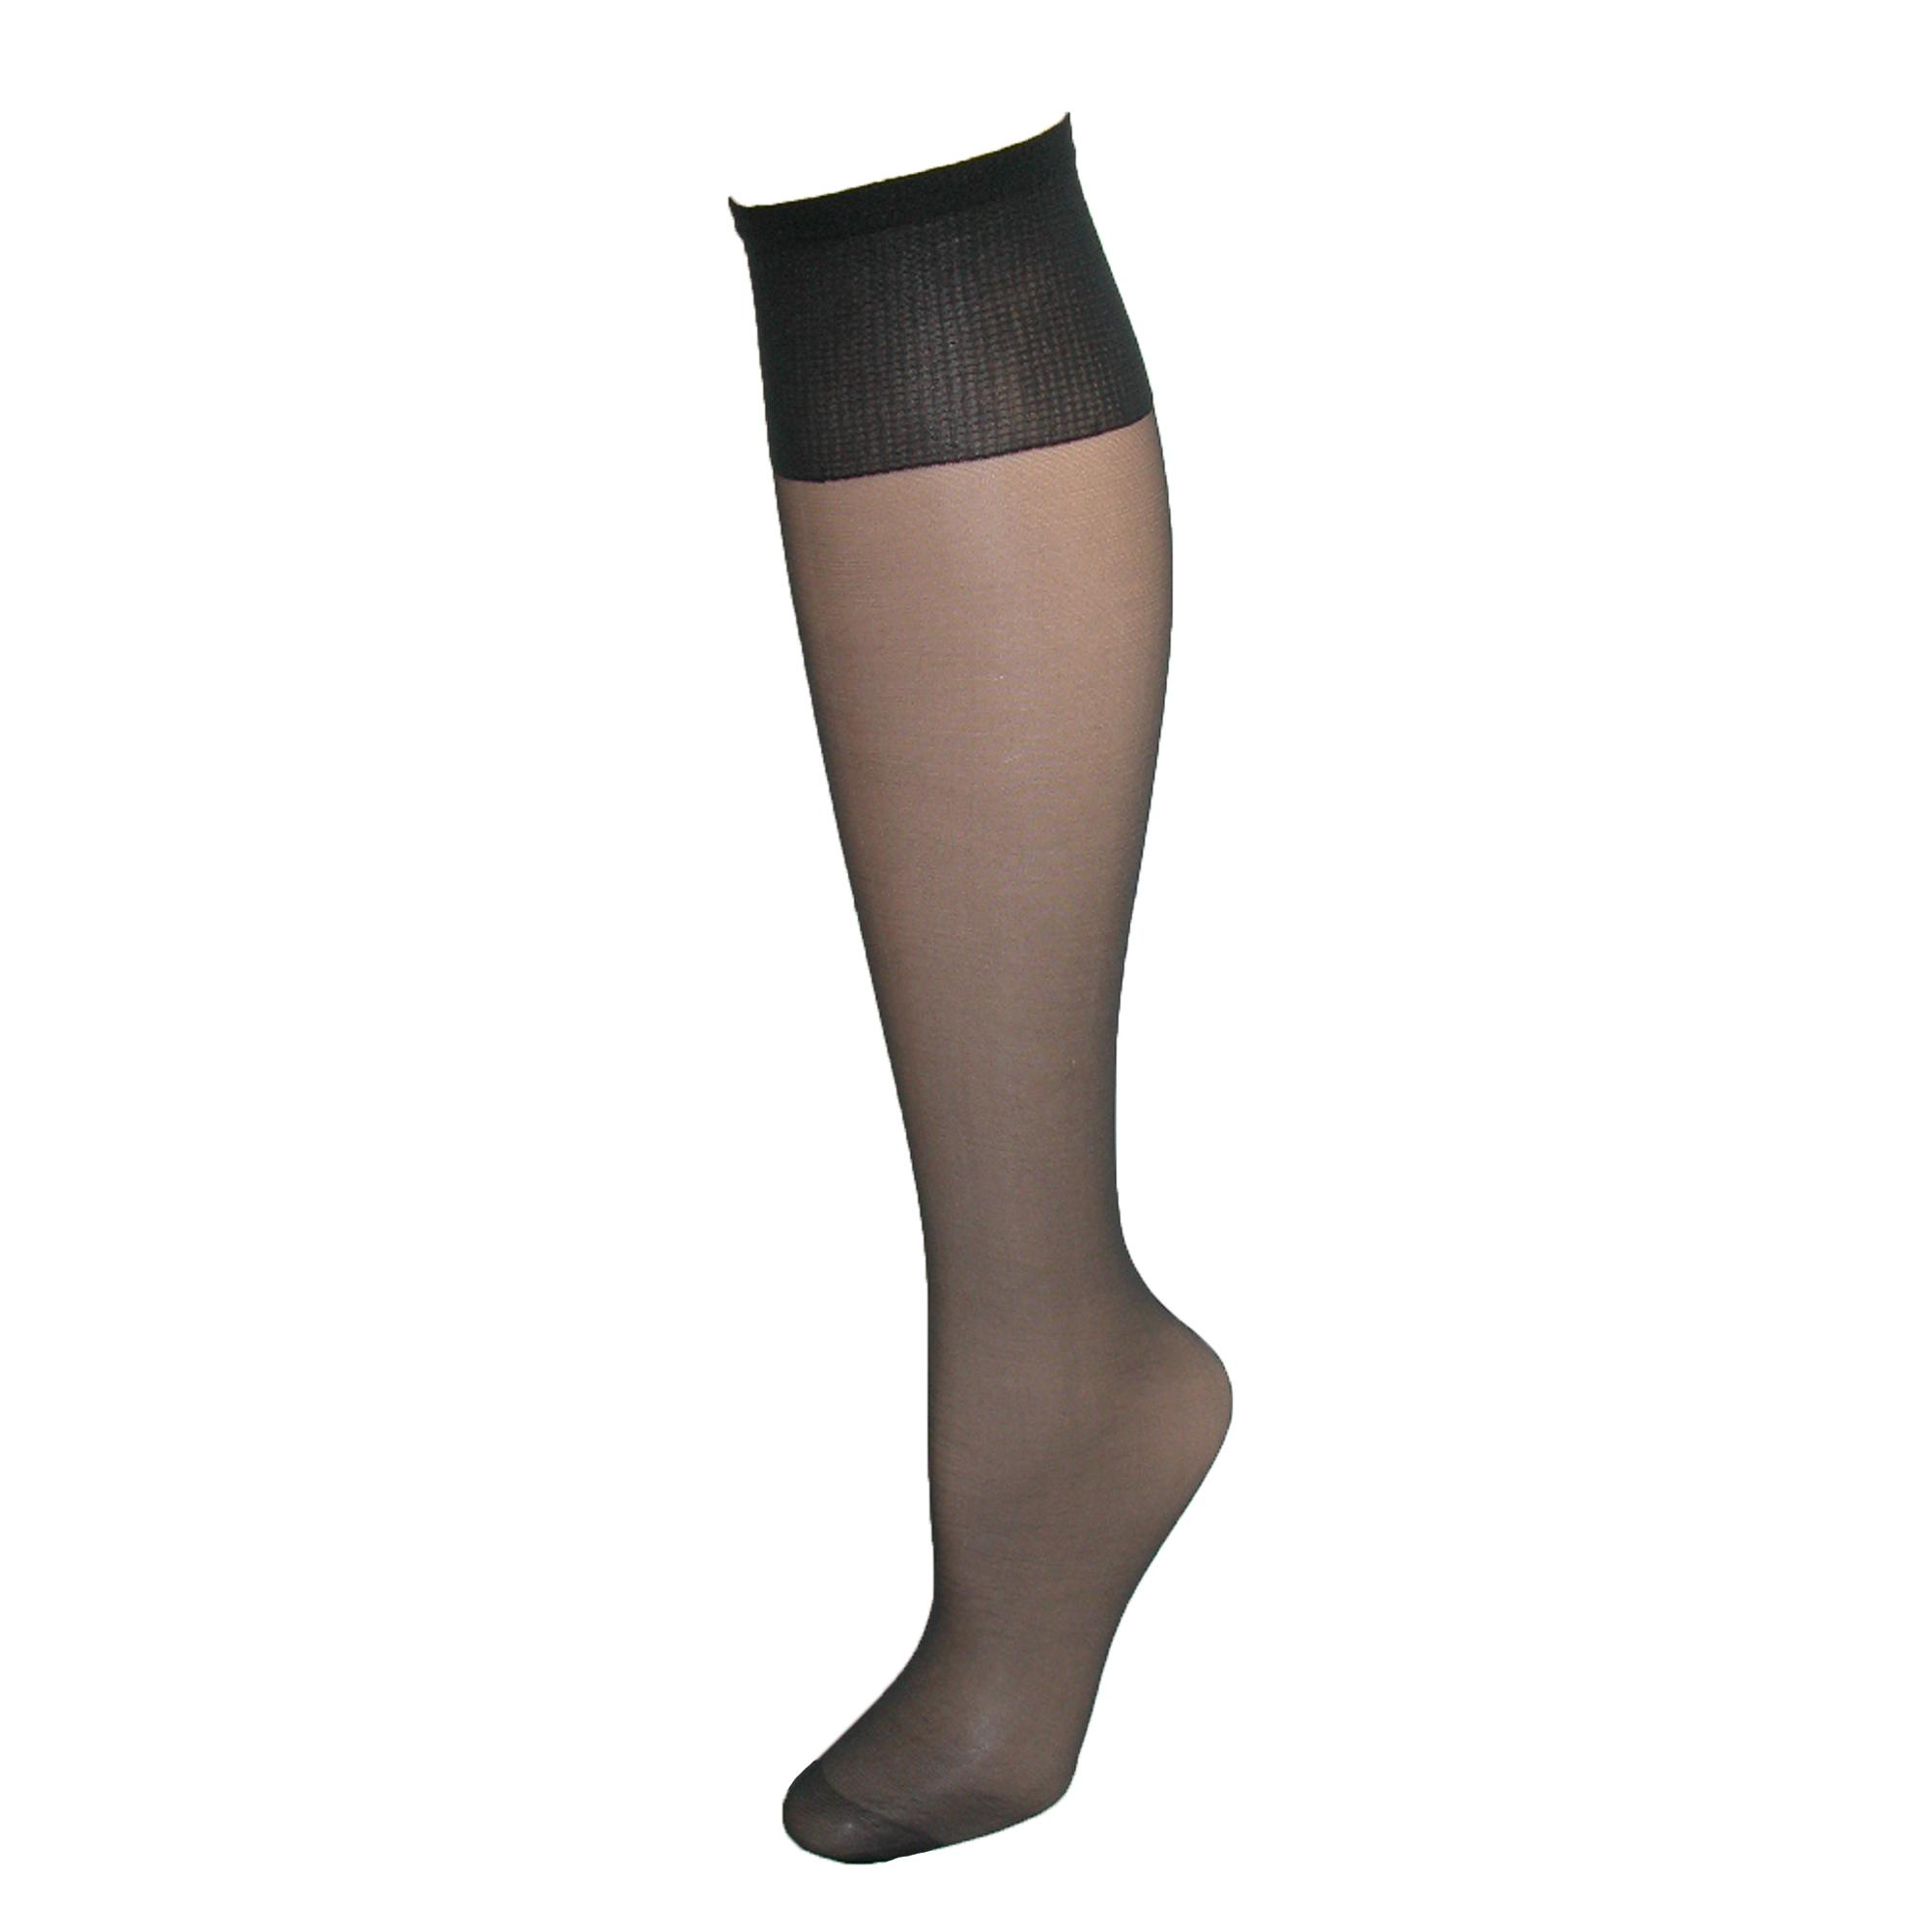 Hanes Womens Plus Size Nylon Sheer Knee High Socks (pack Of 4)